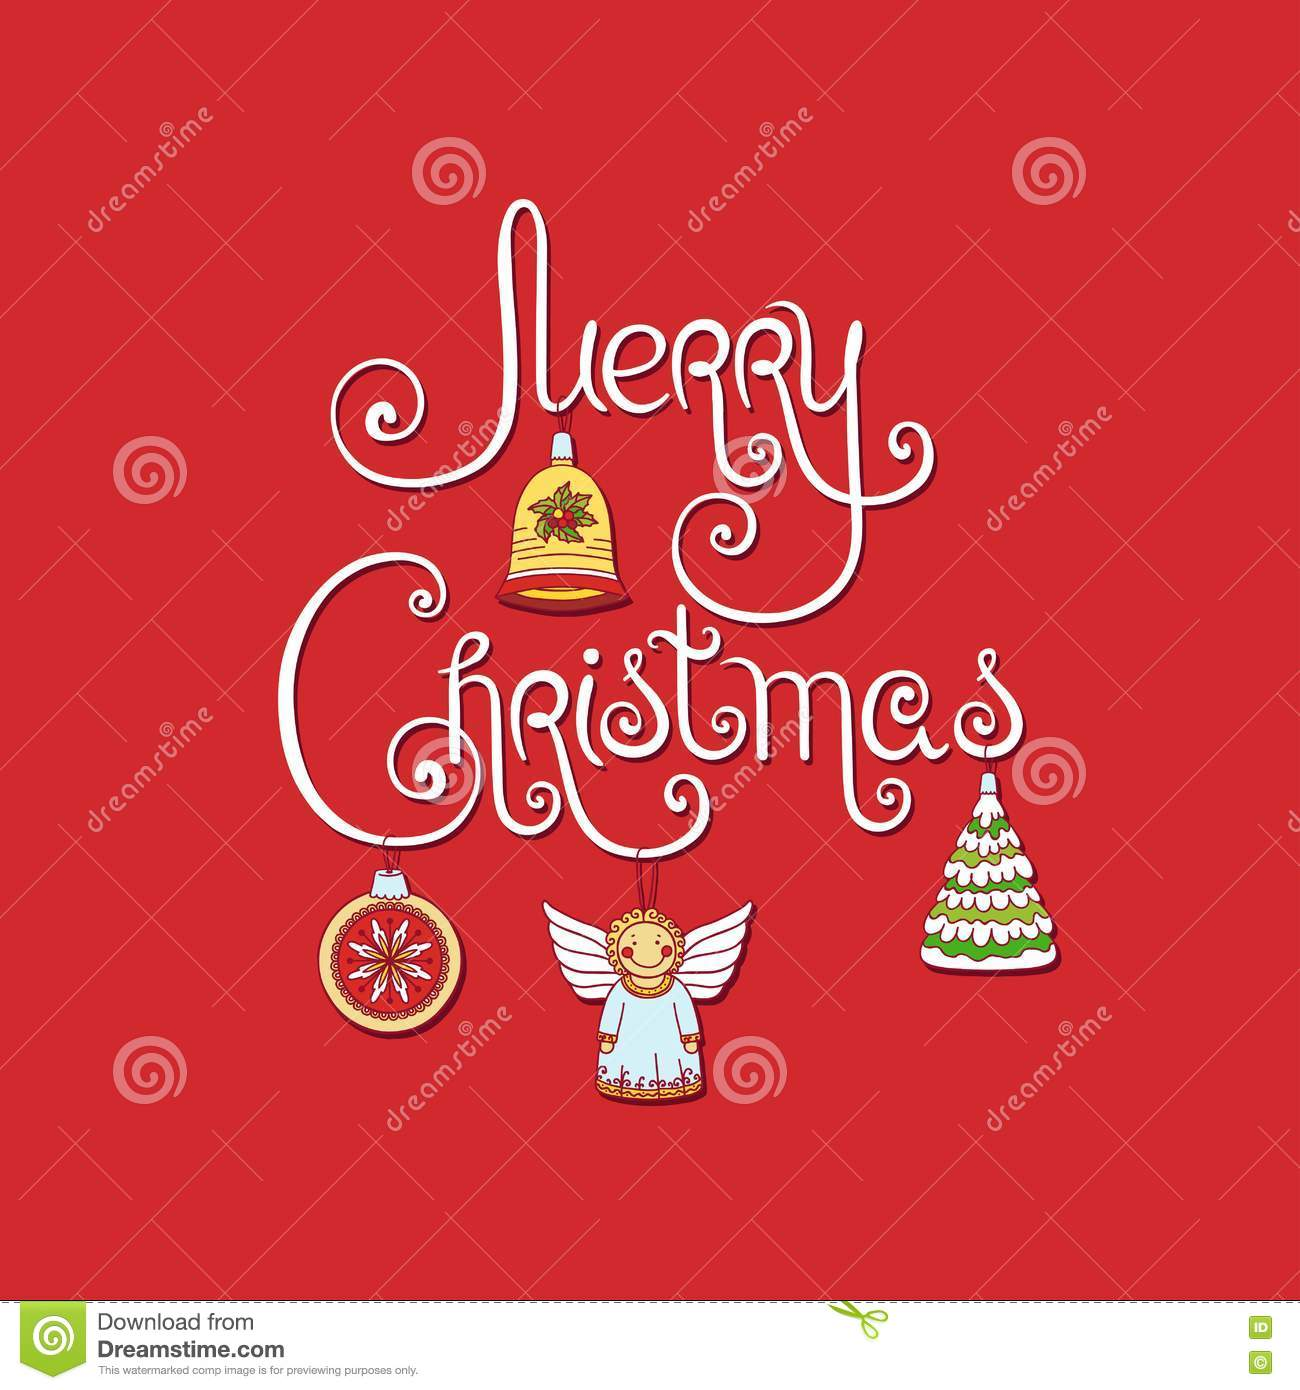 Merry christmas greeting card stock vector illustration of bell download merry christmas greeting card stock vector illustration of bell party 77004427 m4hsunfo